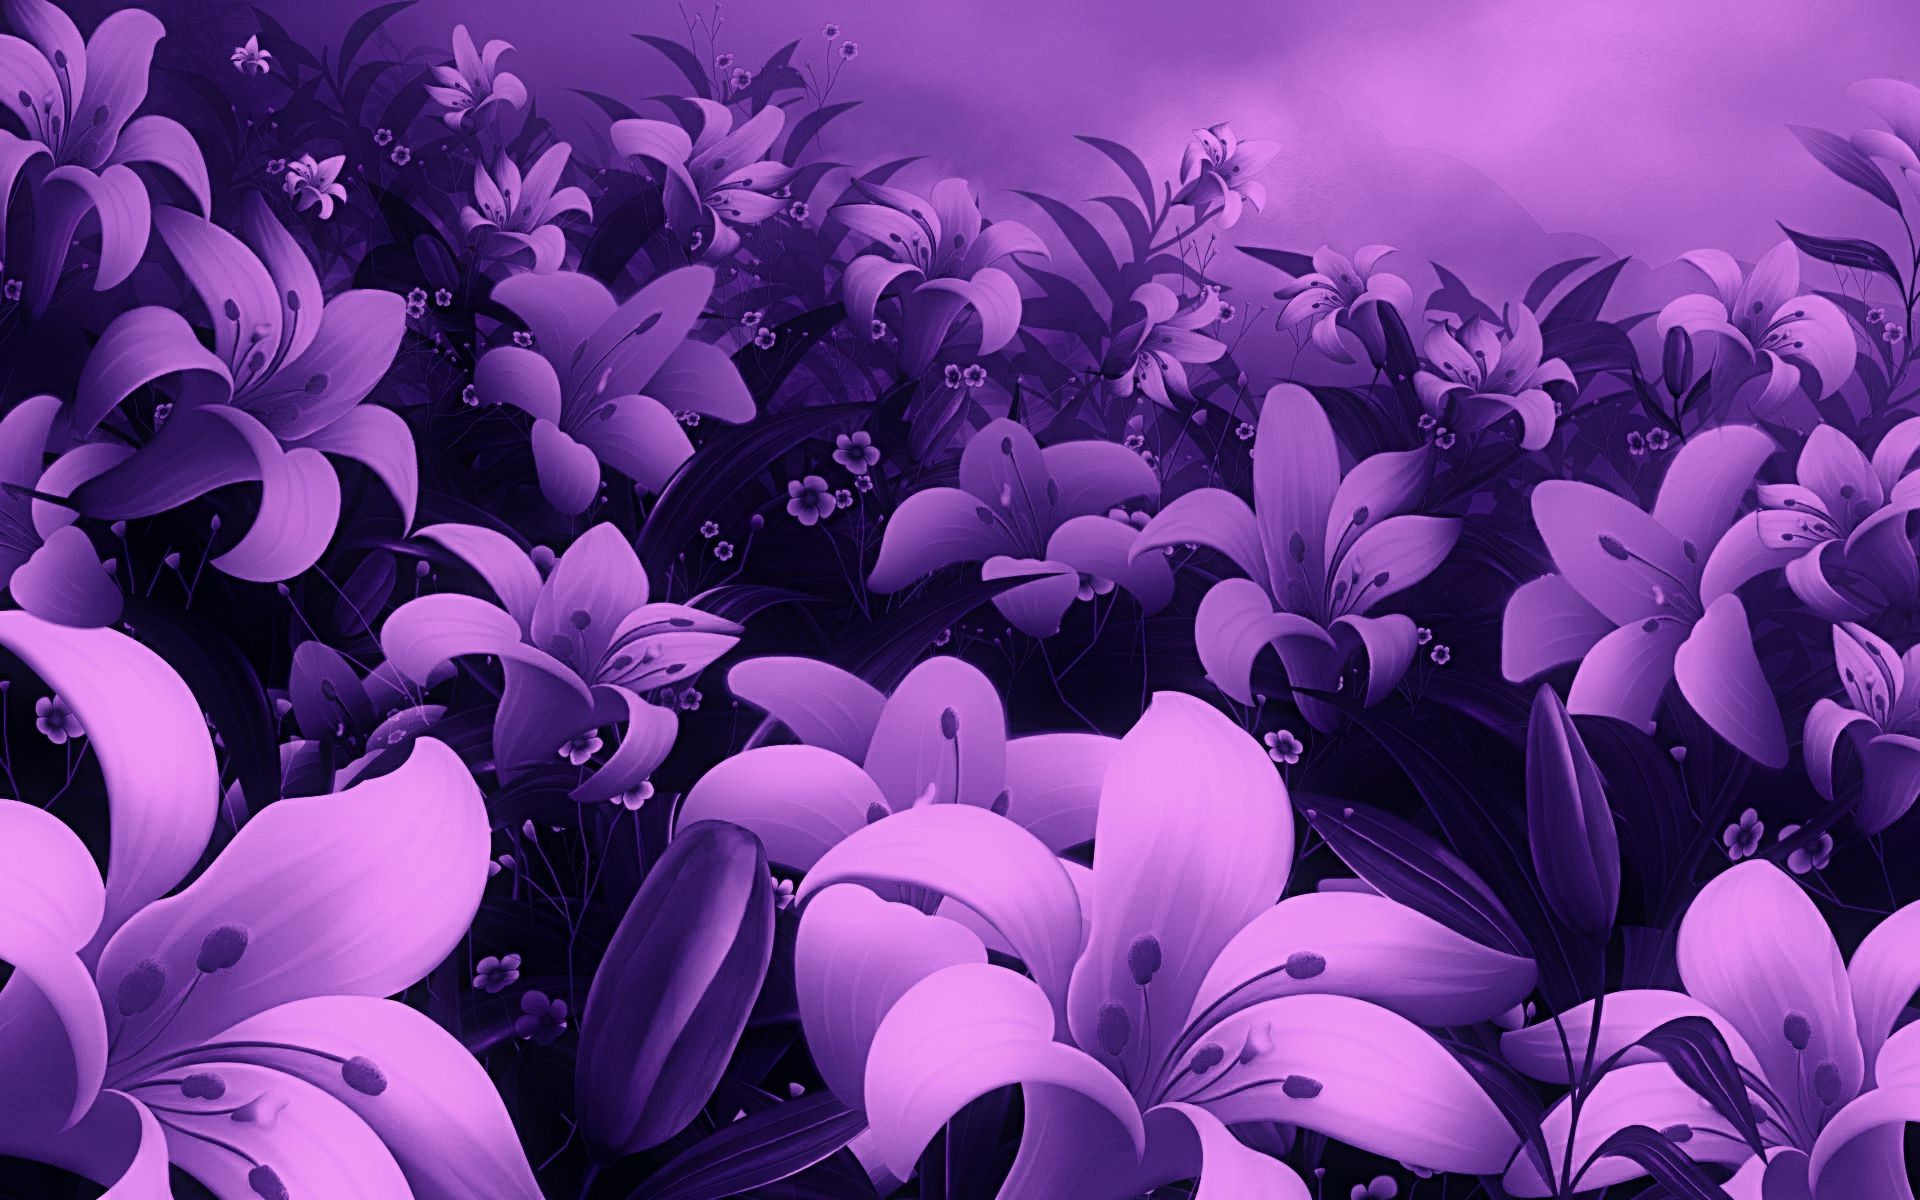 Res: 1920x1200, Awesome, Violet, Flower, Wallpaper, Full, Screen, High, Definition,  Desktop, Background, Photos, Free, Amazing, Cool, Download Wallpaper,  1920×1200 ...